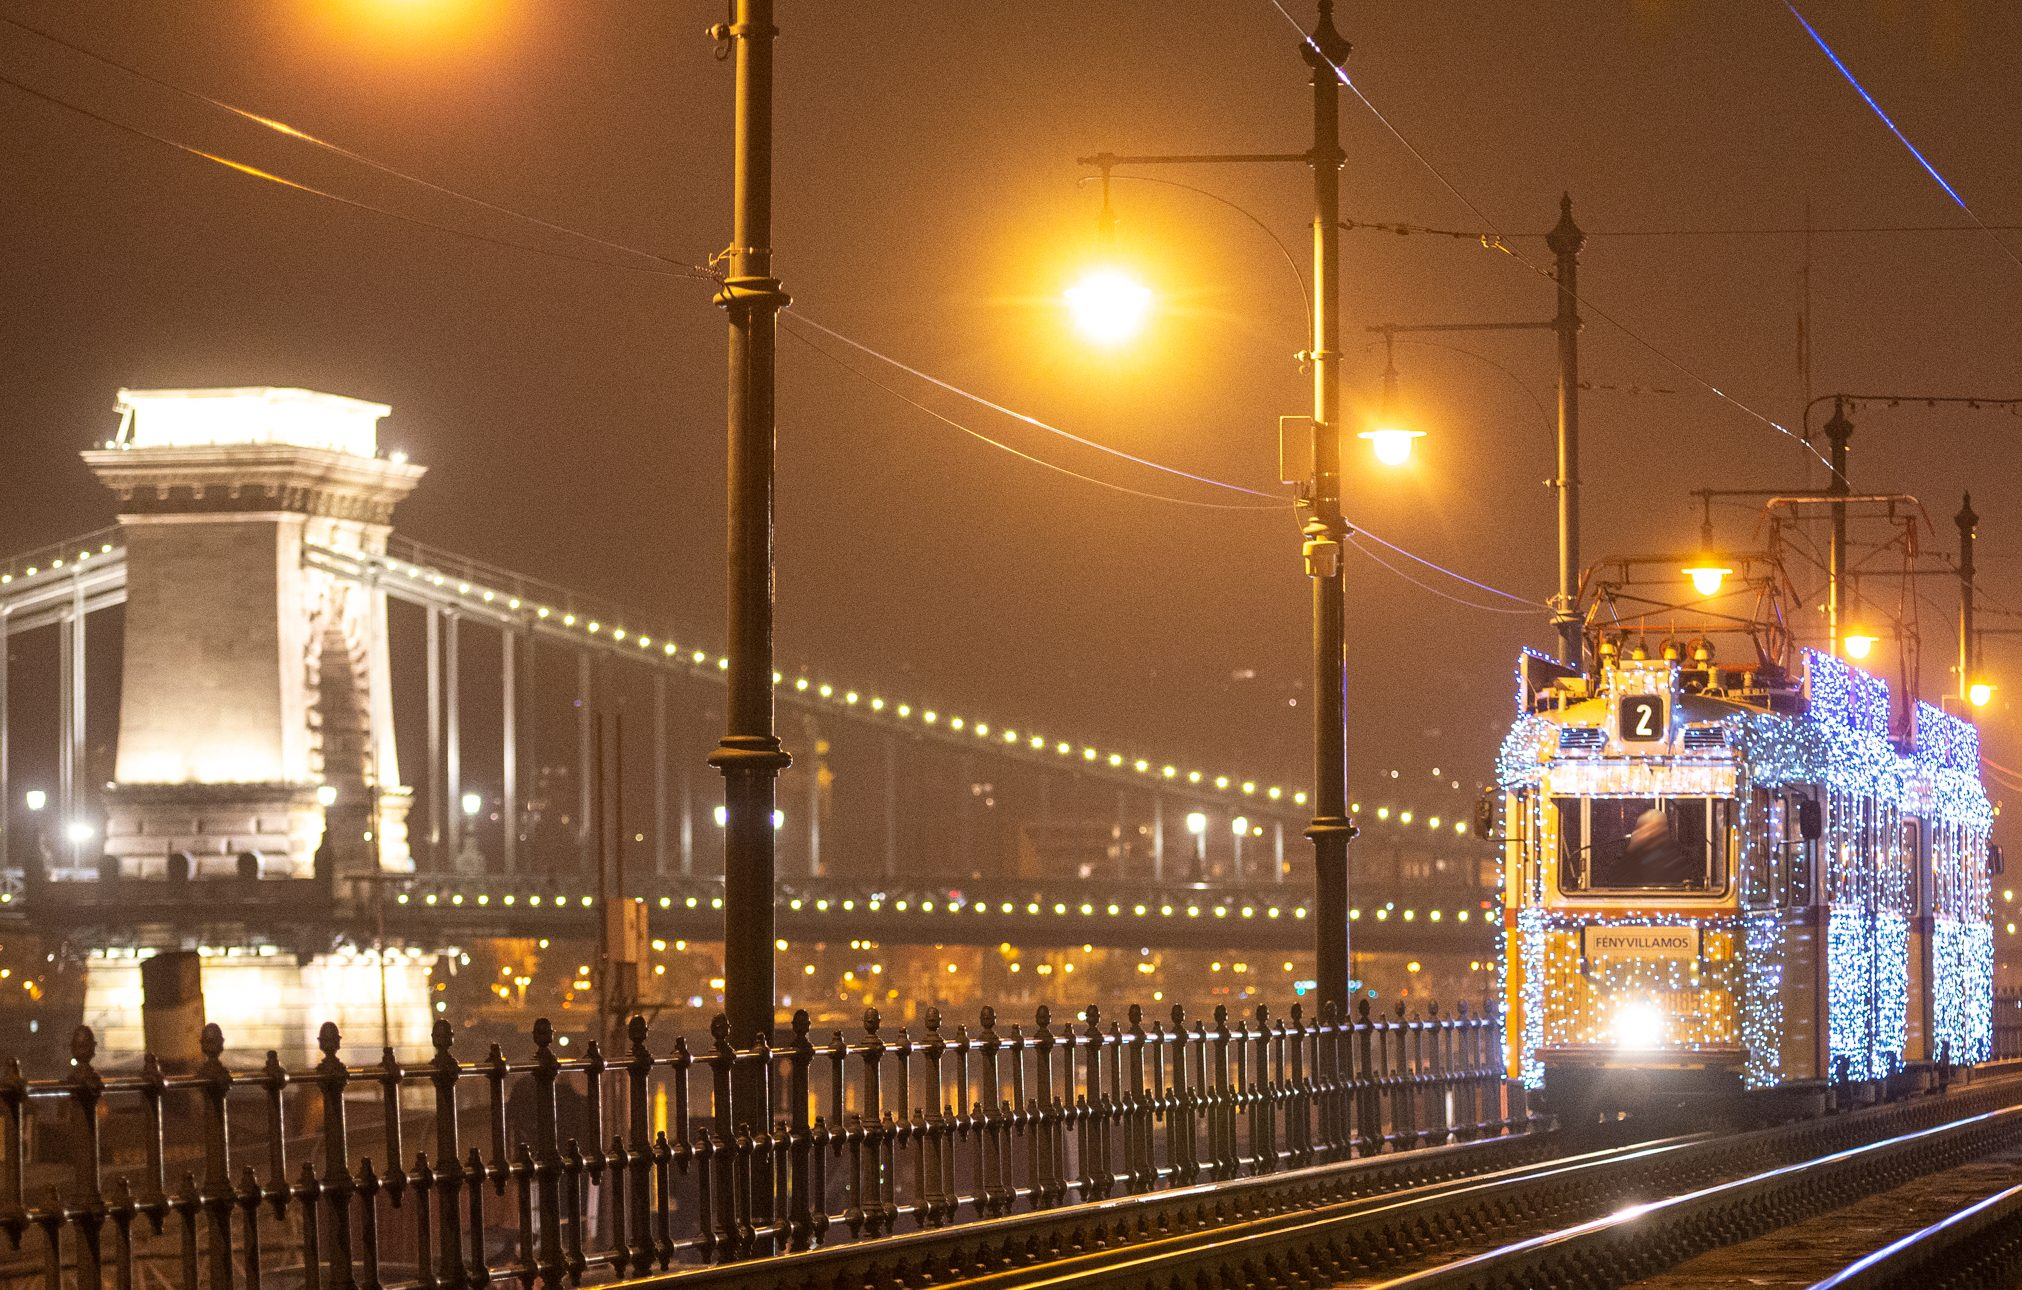 Holidays During COVID: Budapest Celebrates With Spectacular Christmas Trams Again